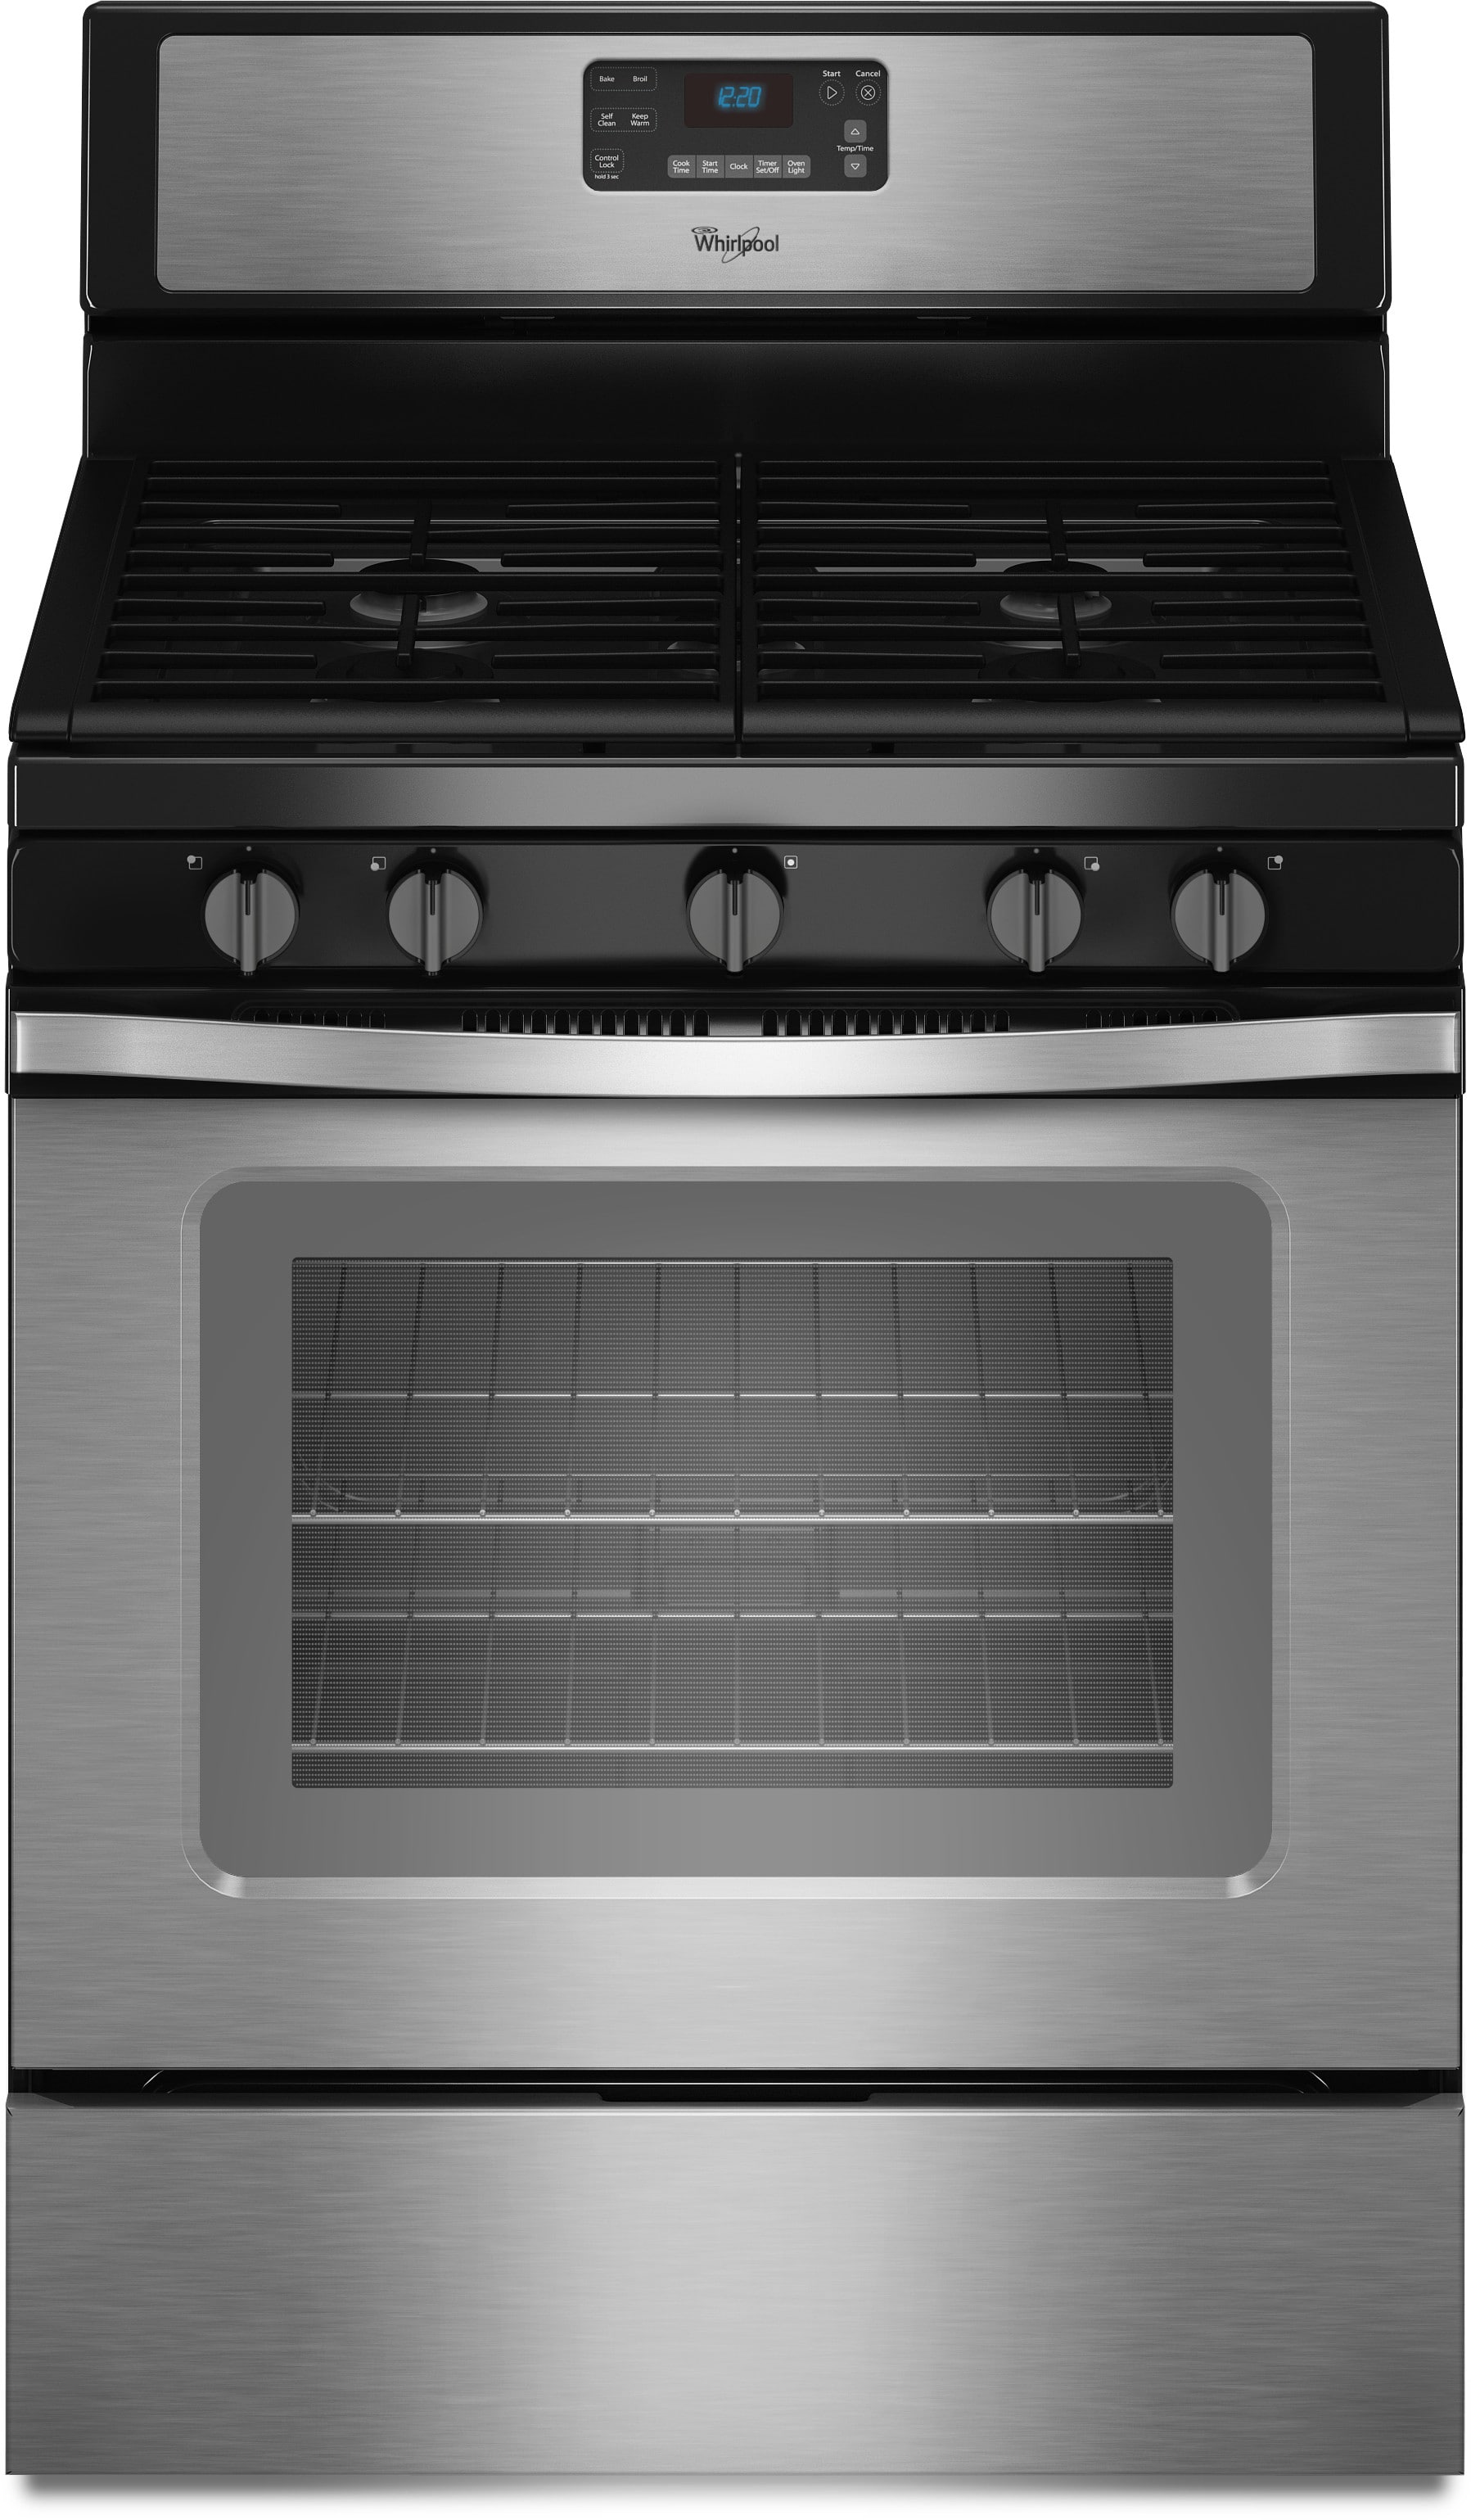 Whirlpool Wfg530s0es 30 Inch Freestanding Gas Range With